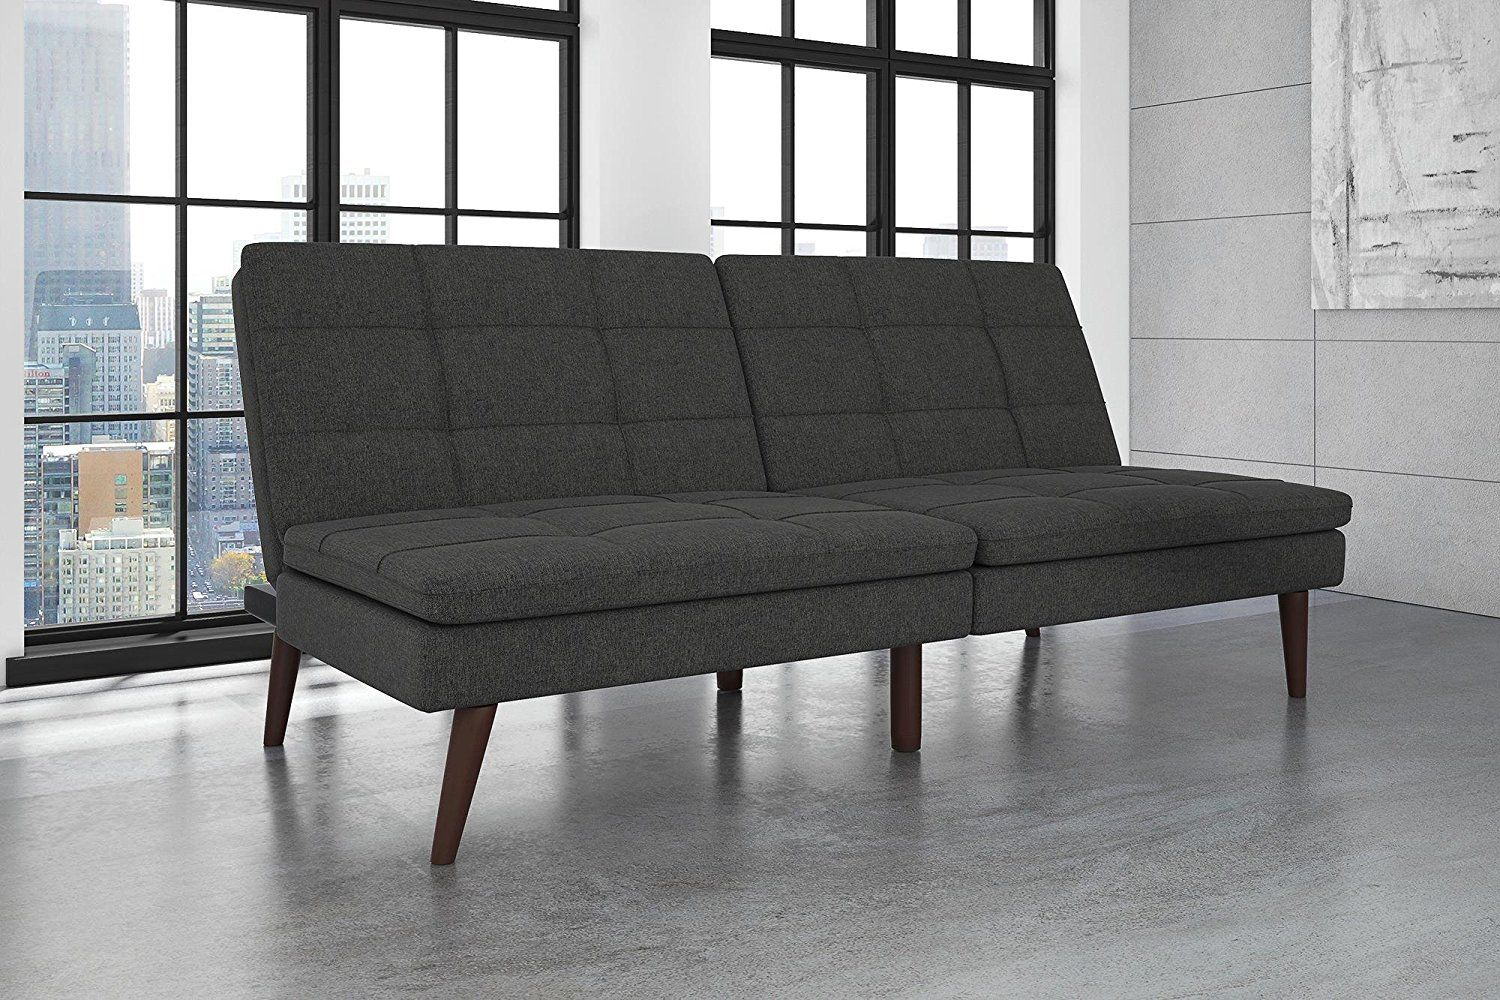 Wish We Had These Futons In College Would Make For Much Clier Stories